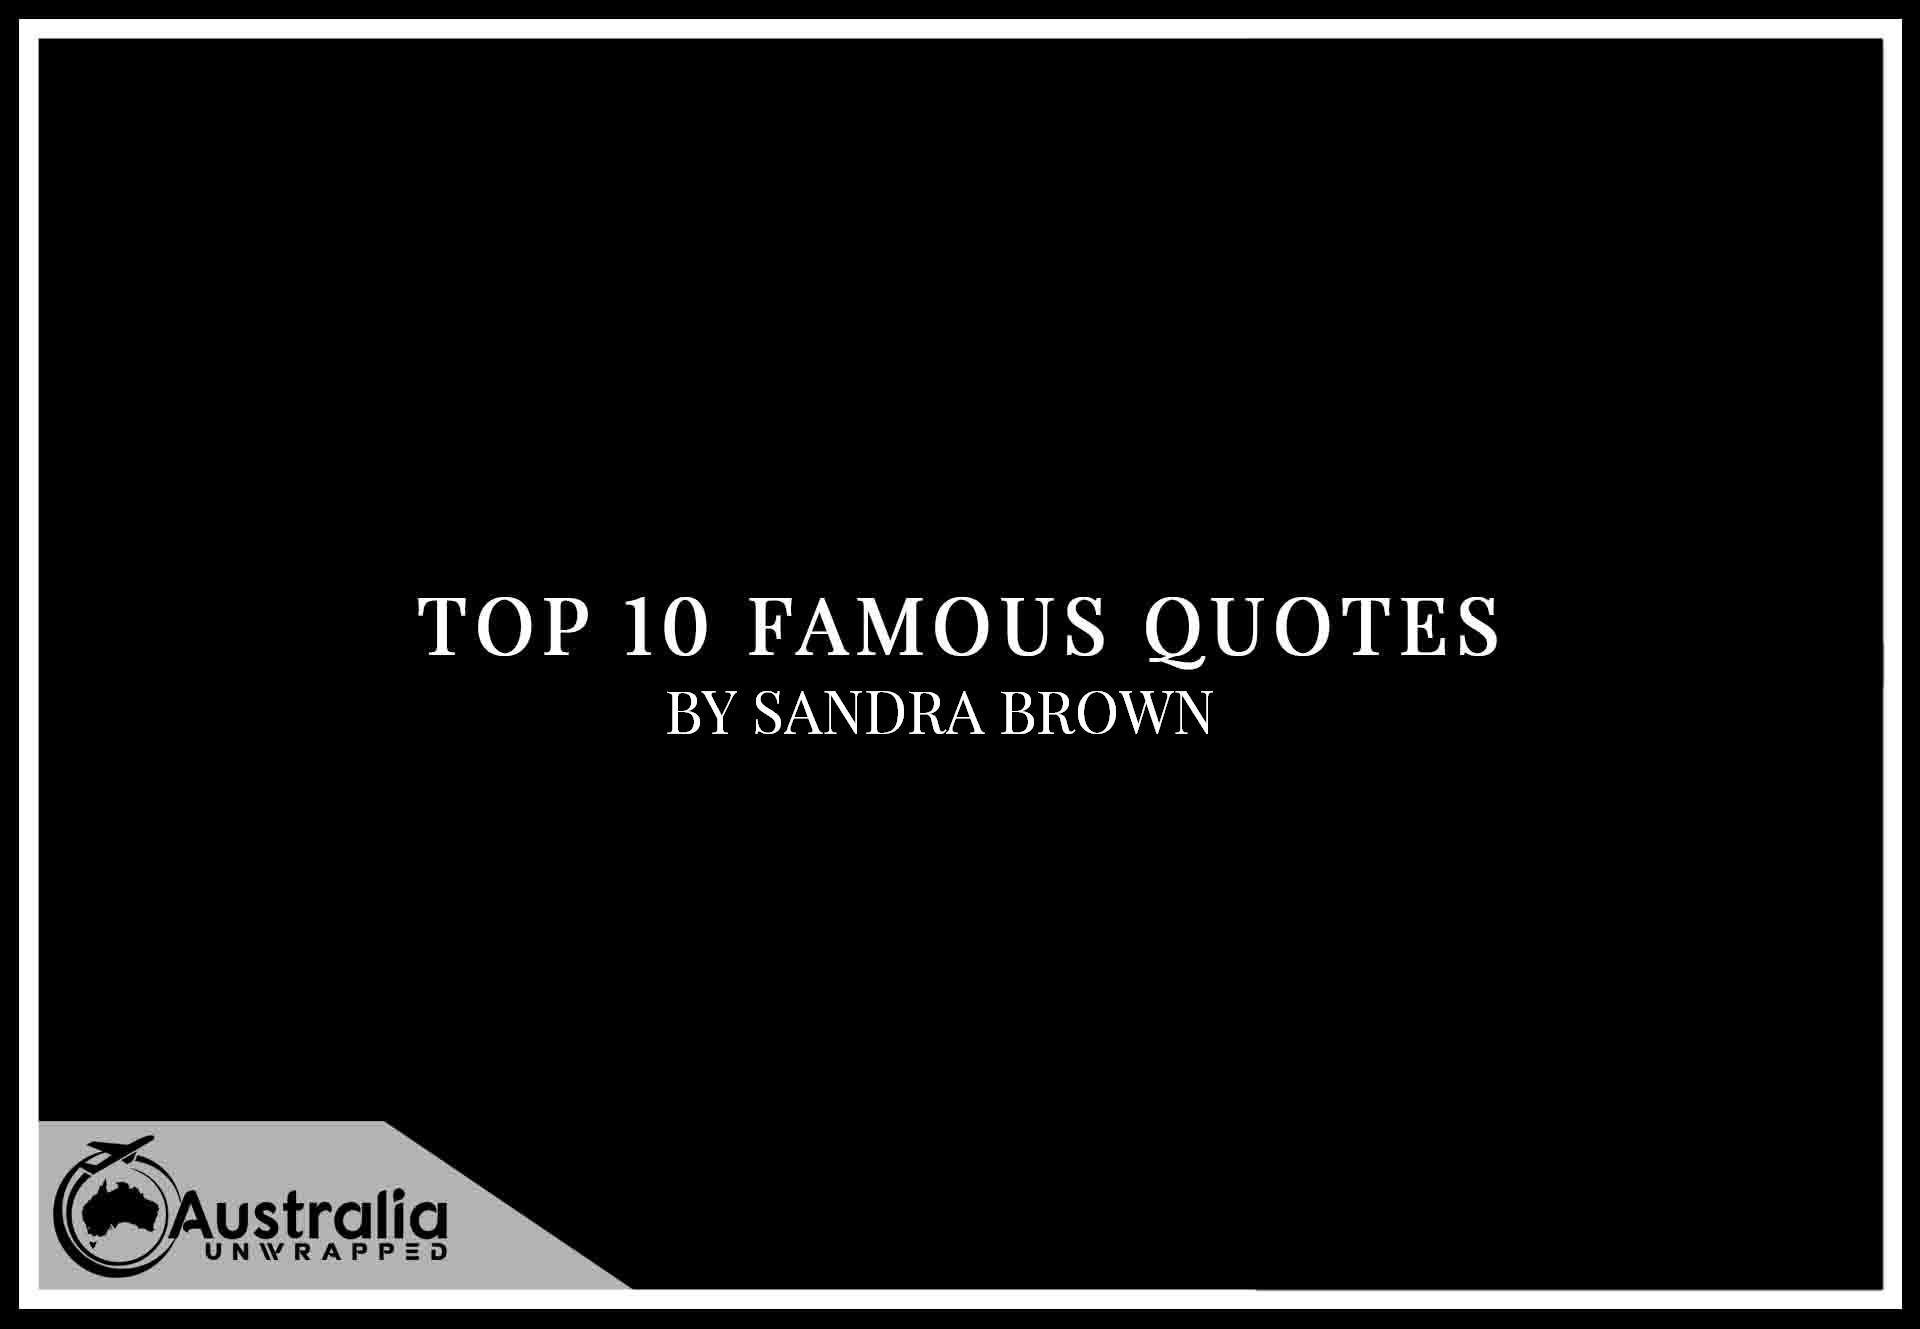 Top 10 Famous Quotes by Author Sandra Brown